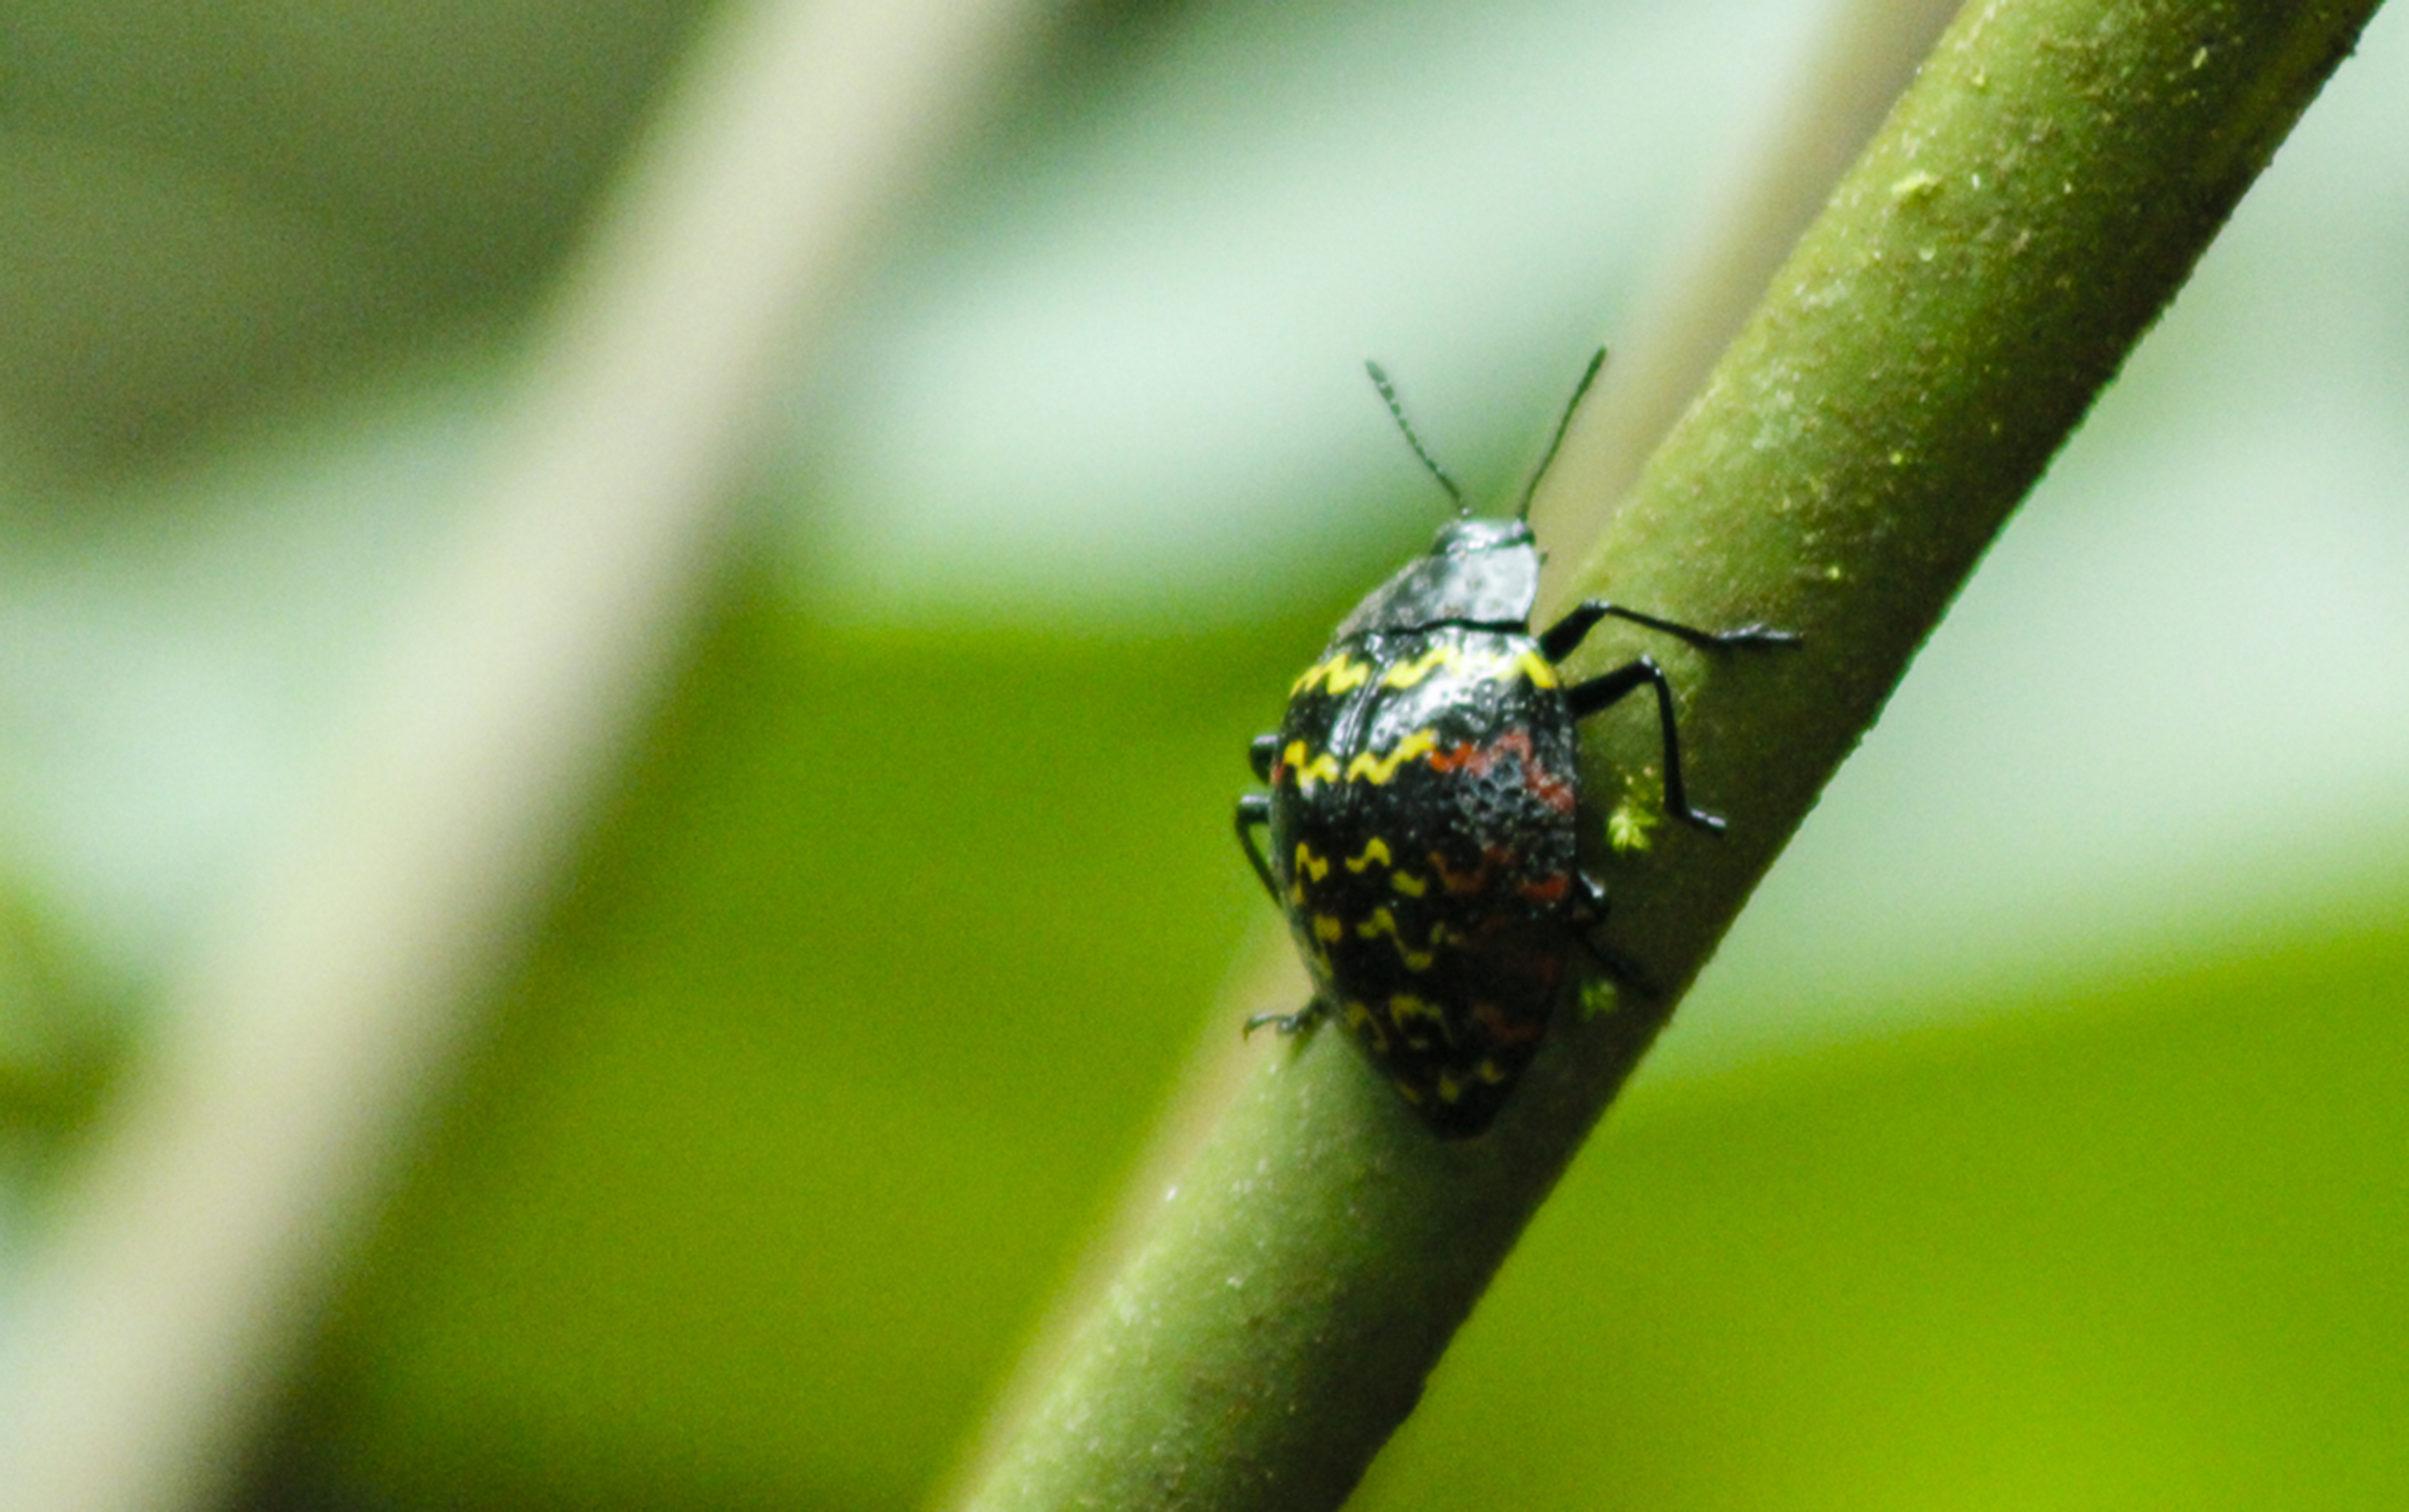 A zigzag beetle adds a tiny splash of colour to a plant stem